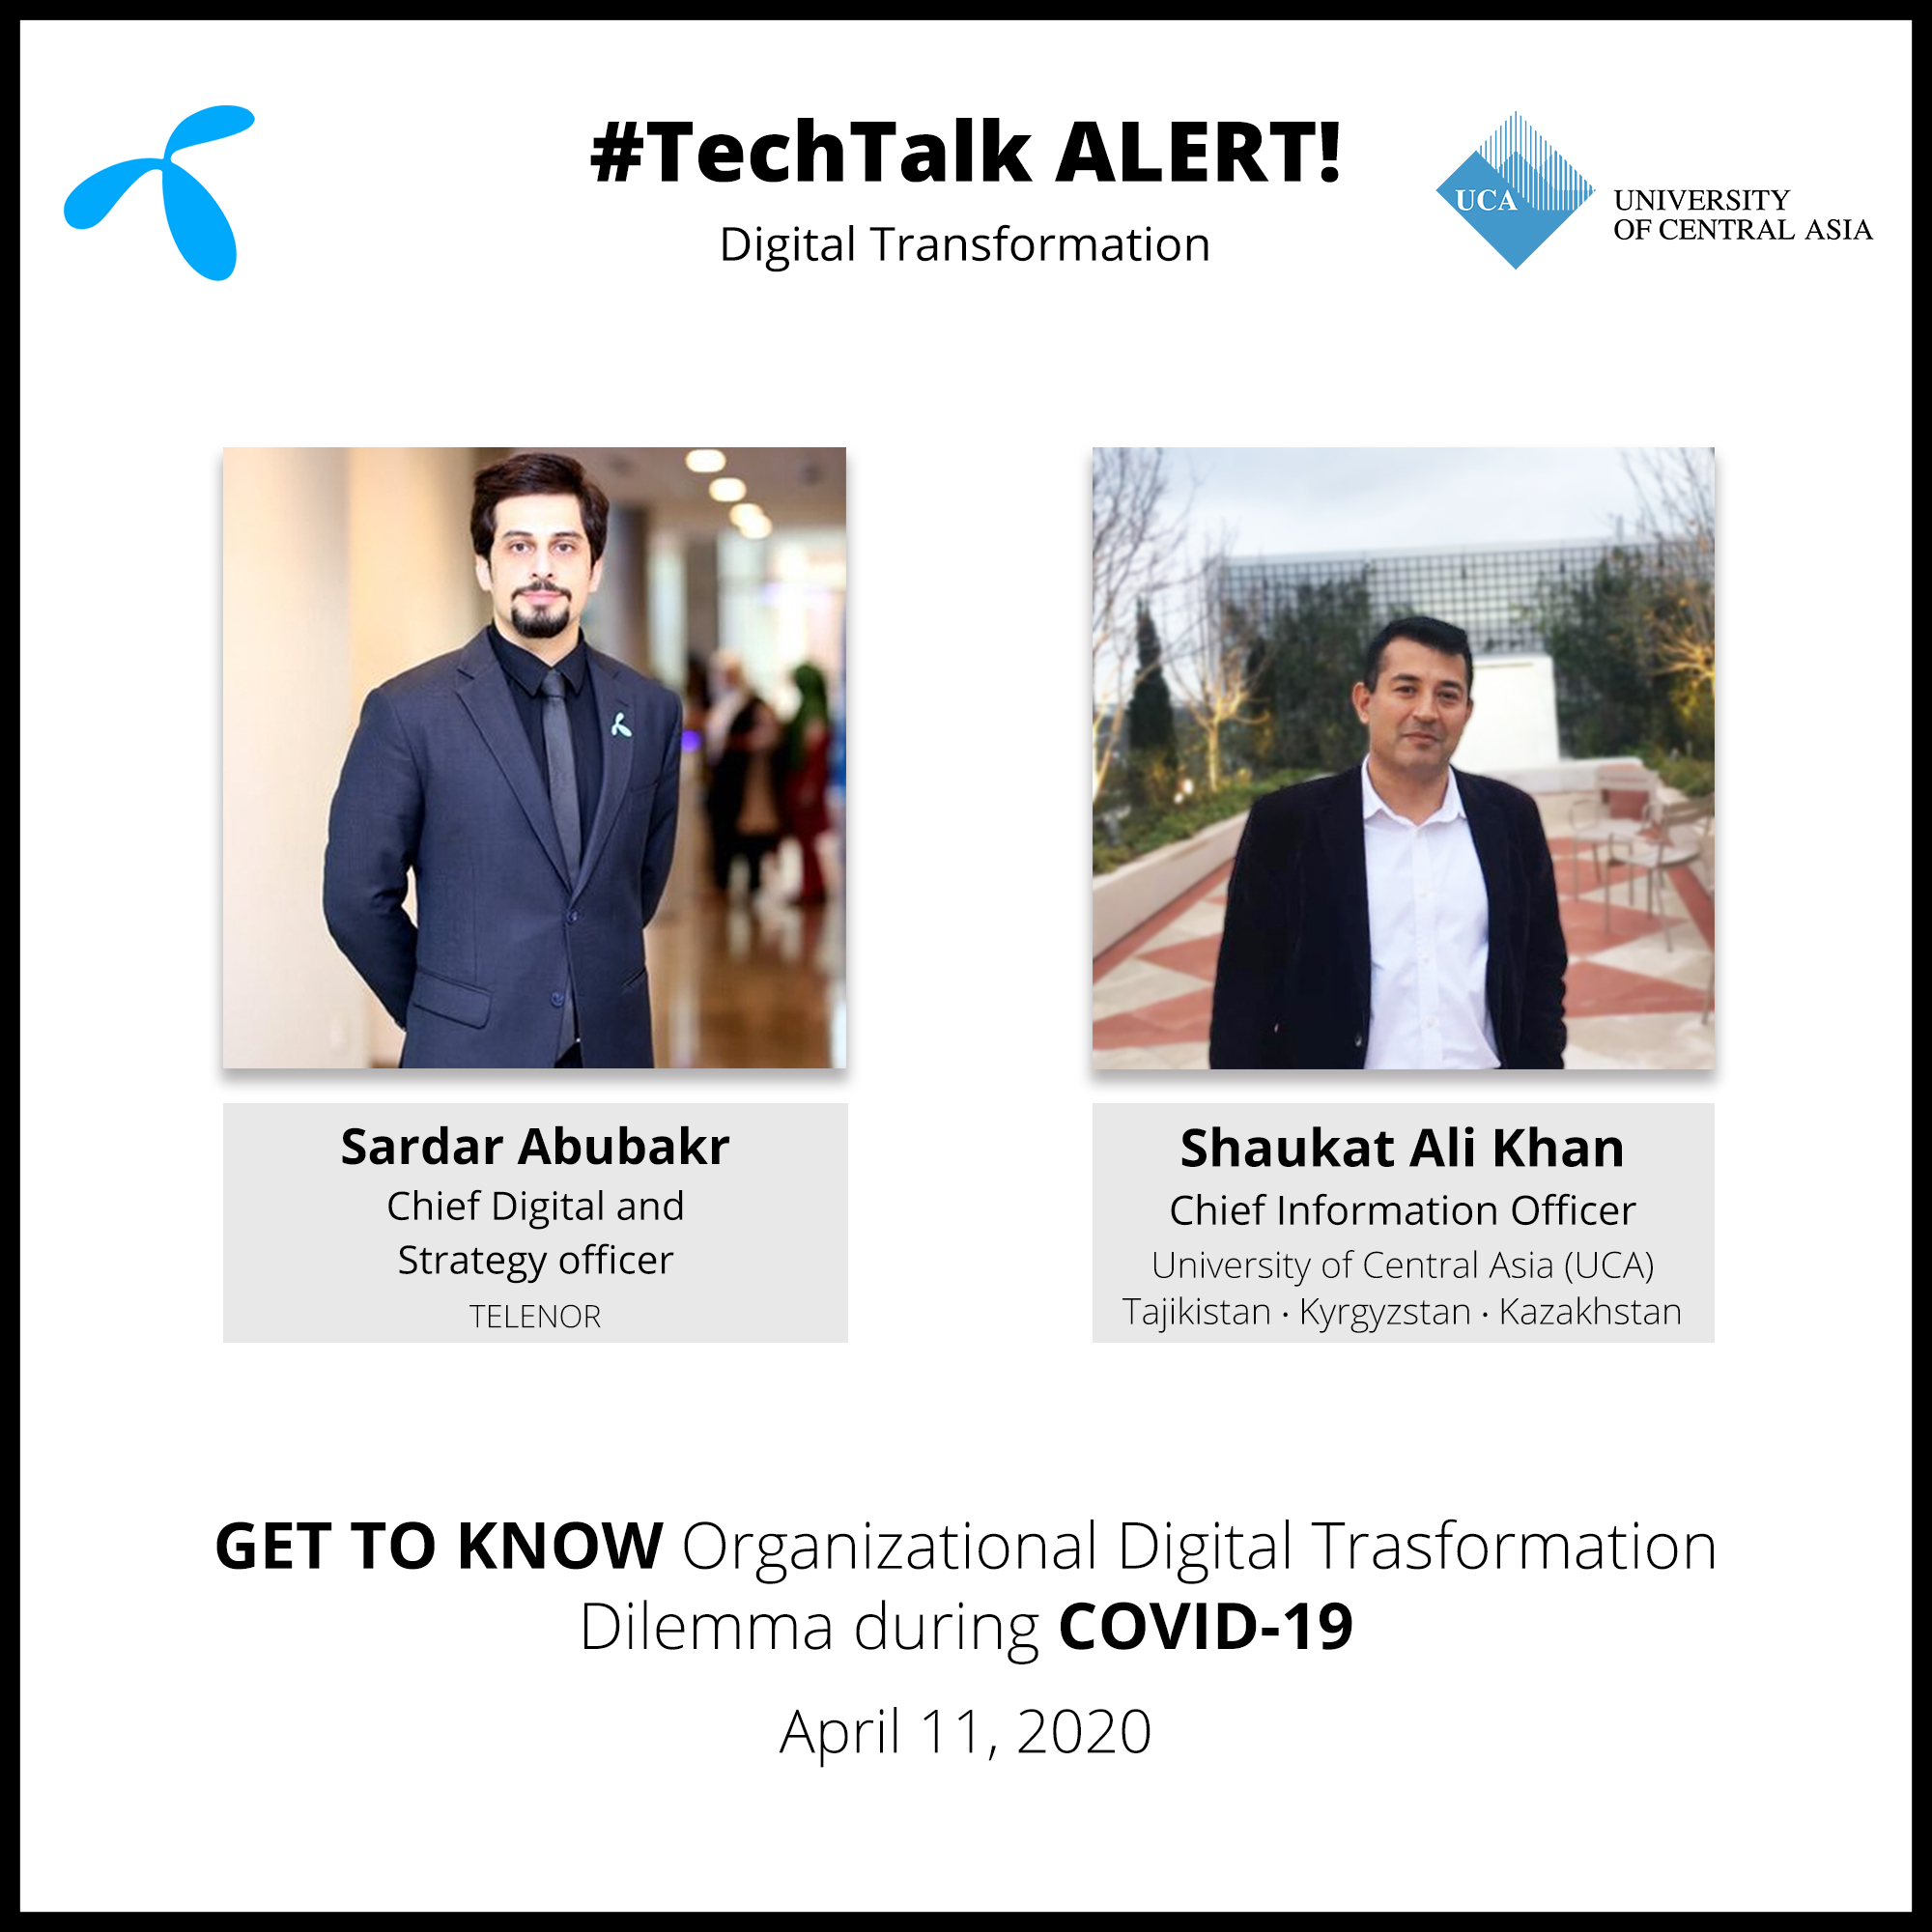 Sardar Abubakr, CDO, Telenor & Shaukat Ali Khan, CIO, University of Central Asia